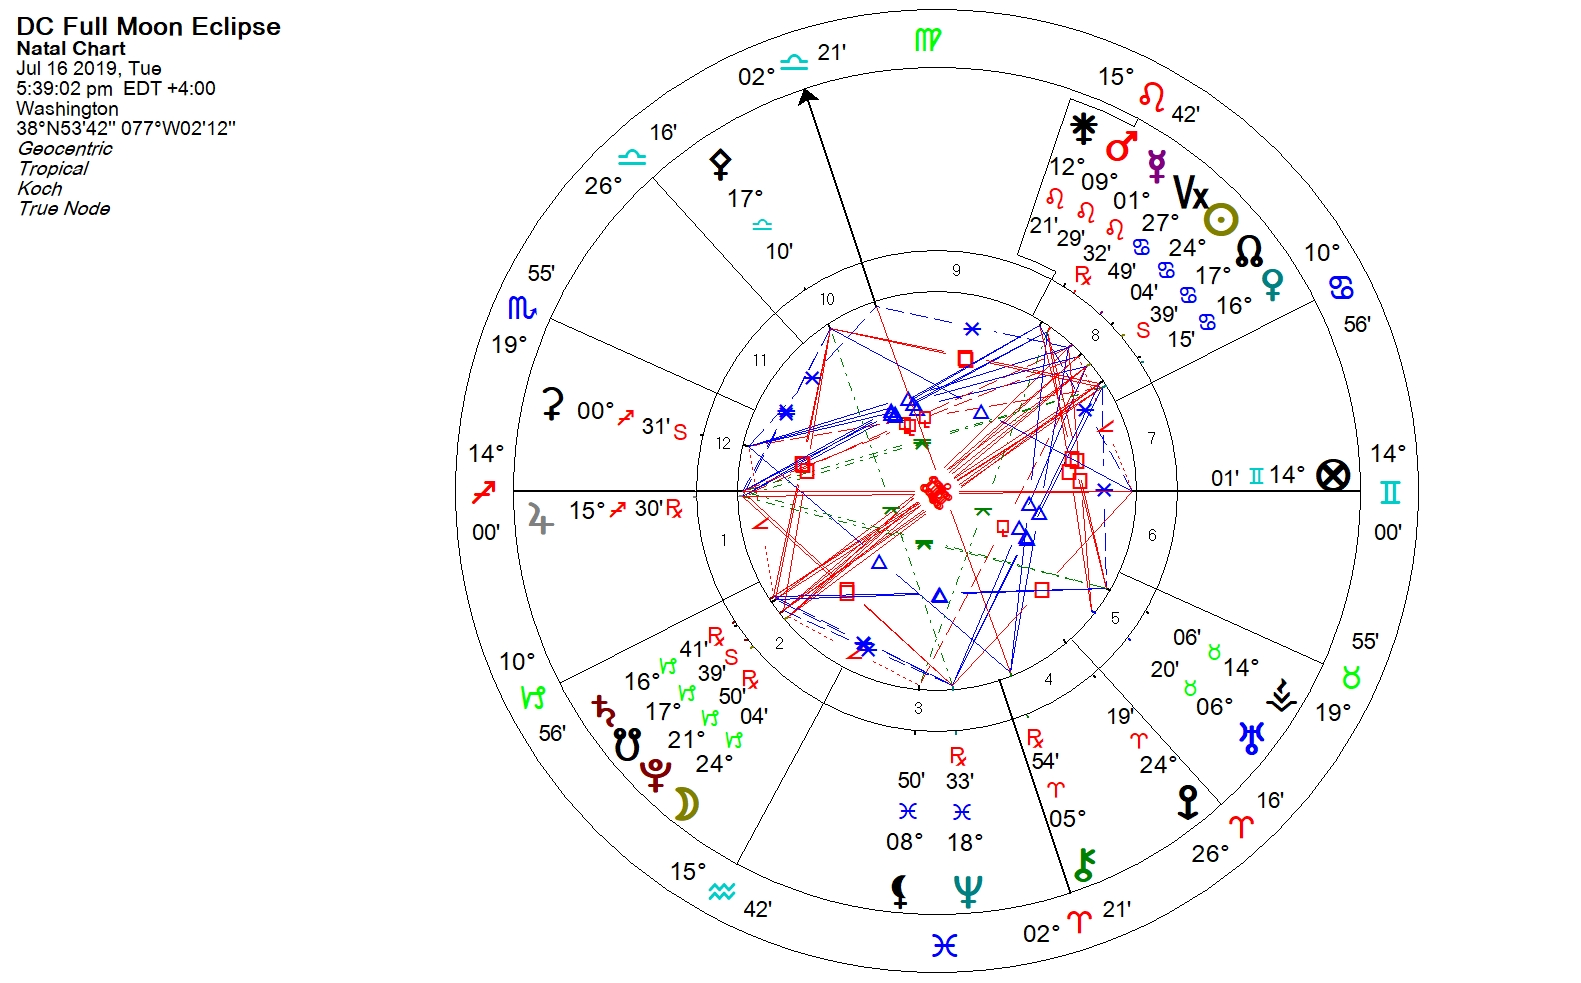 Starcats' 2019 Planetary Motion Guide